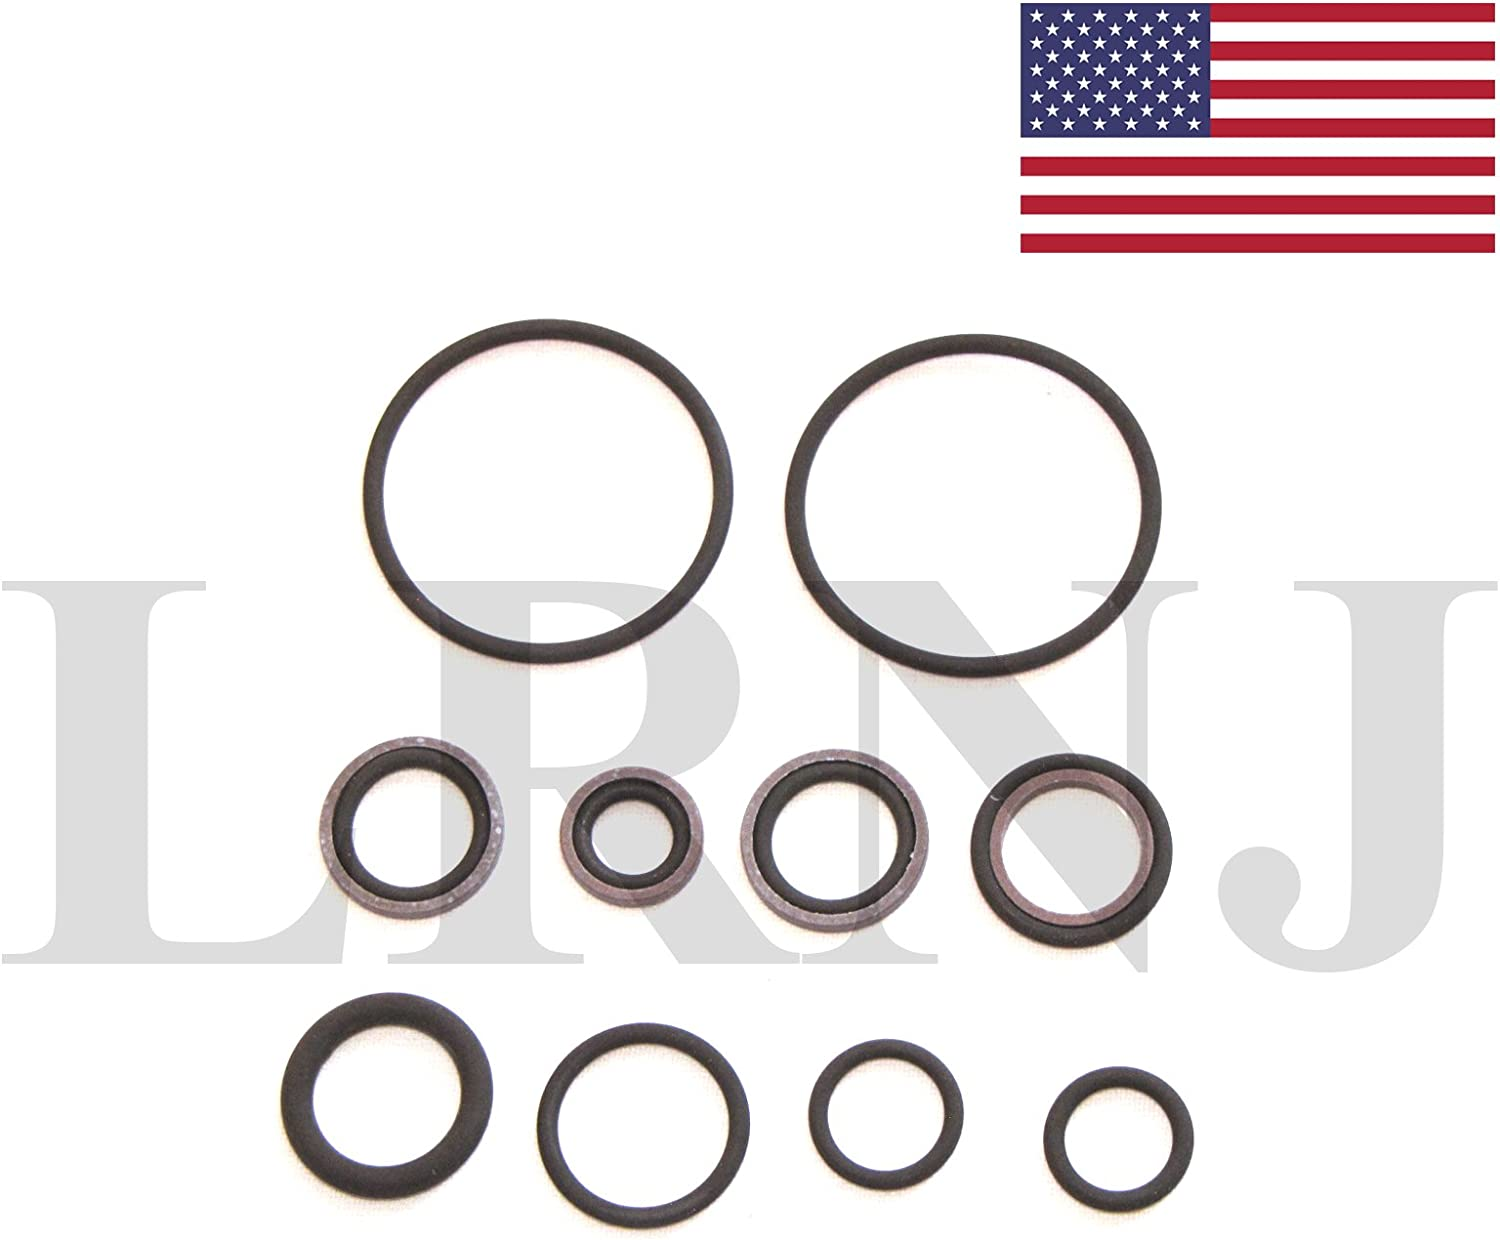 O-RING SEAL REPAIR KIT FOR S54 ENGINE VANOS UNIT LRNJBMWS54 APPLICABLE TO BMW Z4 E85 E86 M3.2 ROADSTER /& COUPE 2002-2008 PART